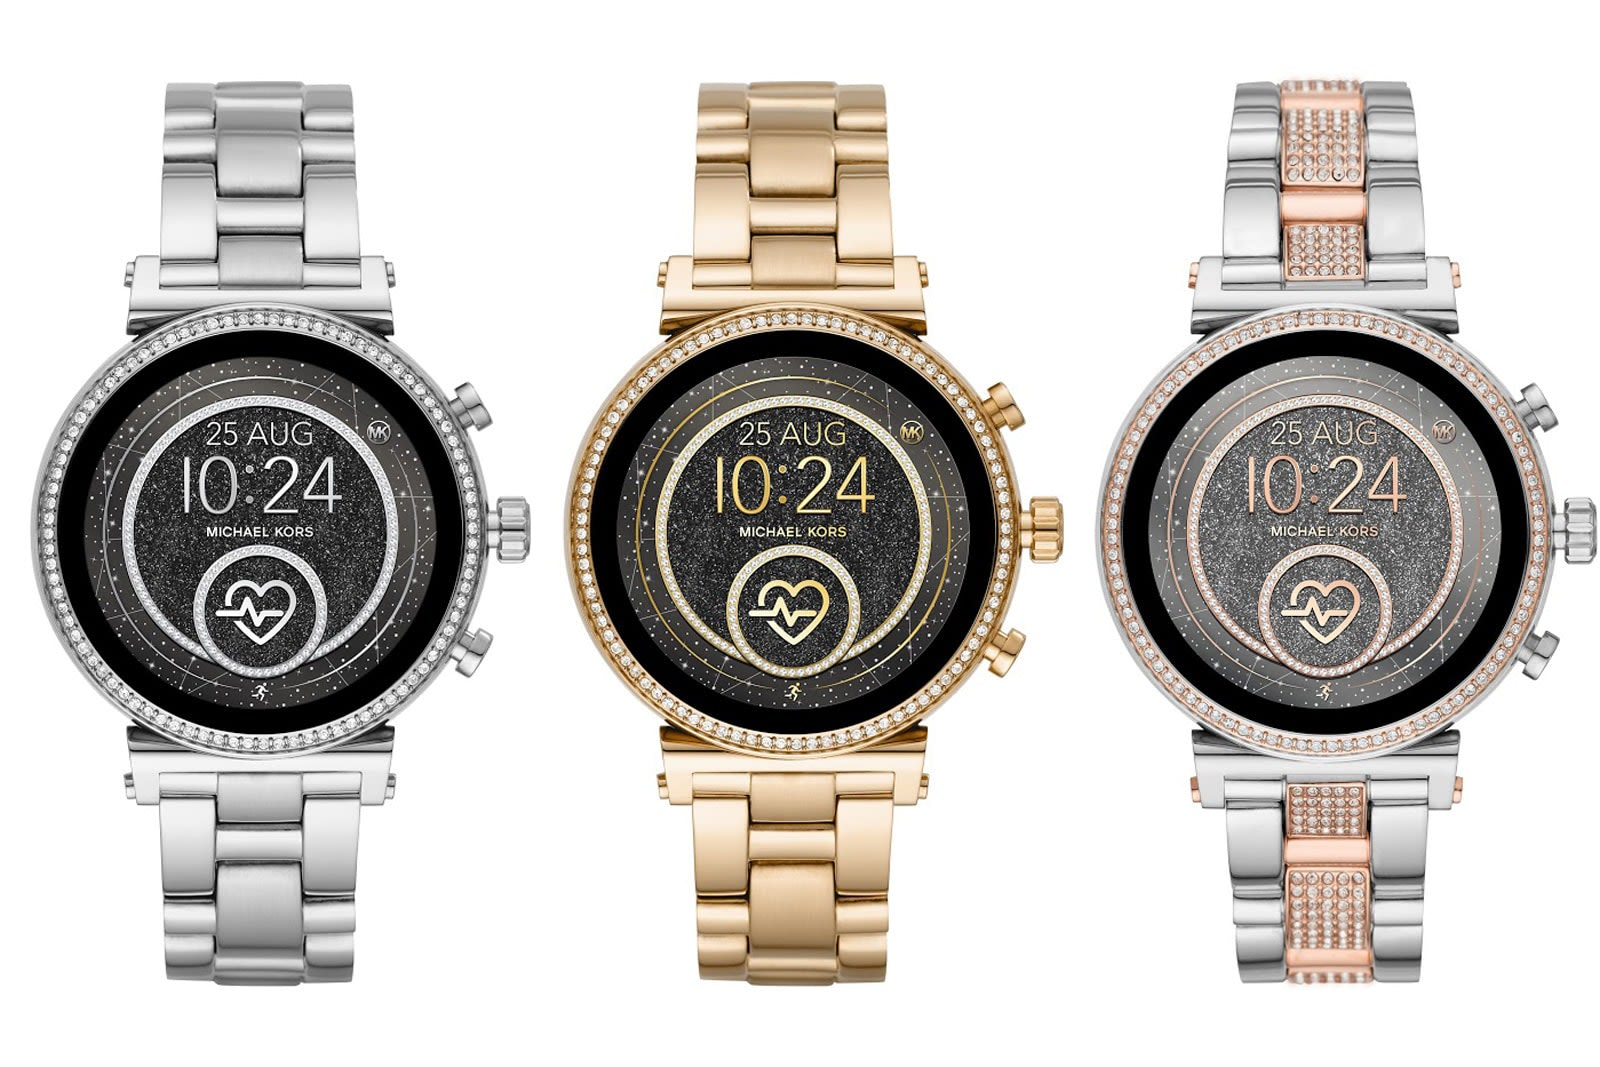 8601a502e906 Michael Kors  Sofie 2.0 smartwatch is about more than just fashion